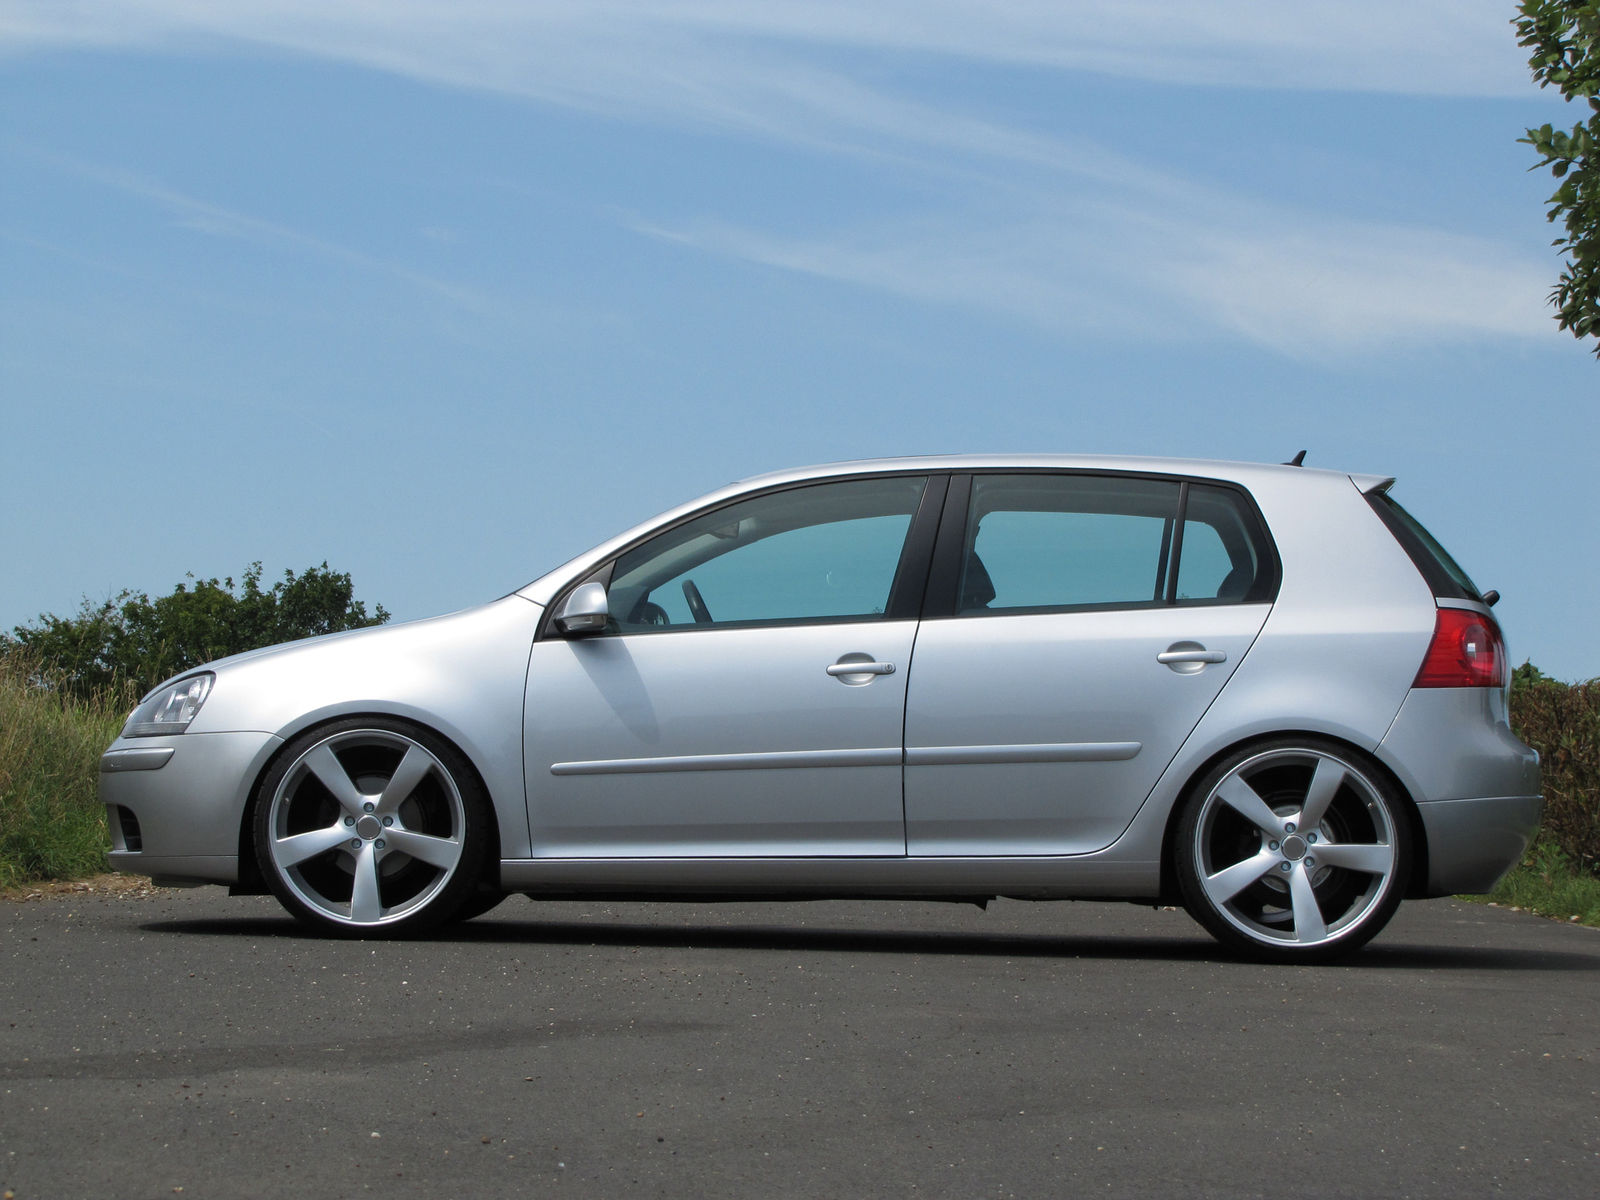 News Alufelgen Vw Golf 5 6 1k Gti Gtd R32 Edeition 35 30